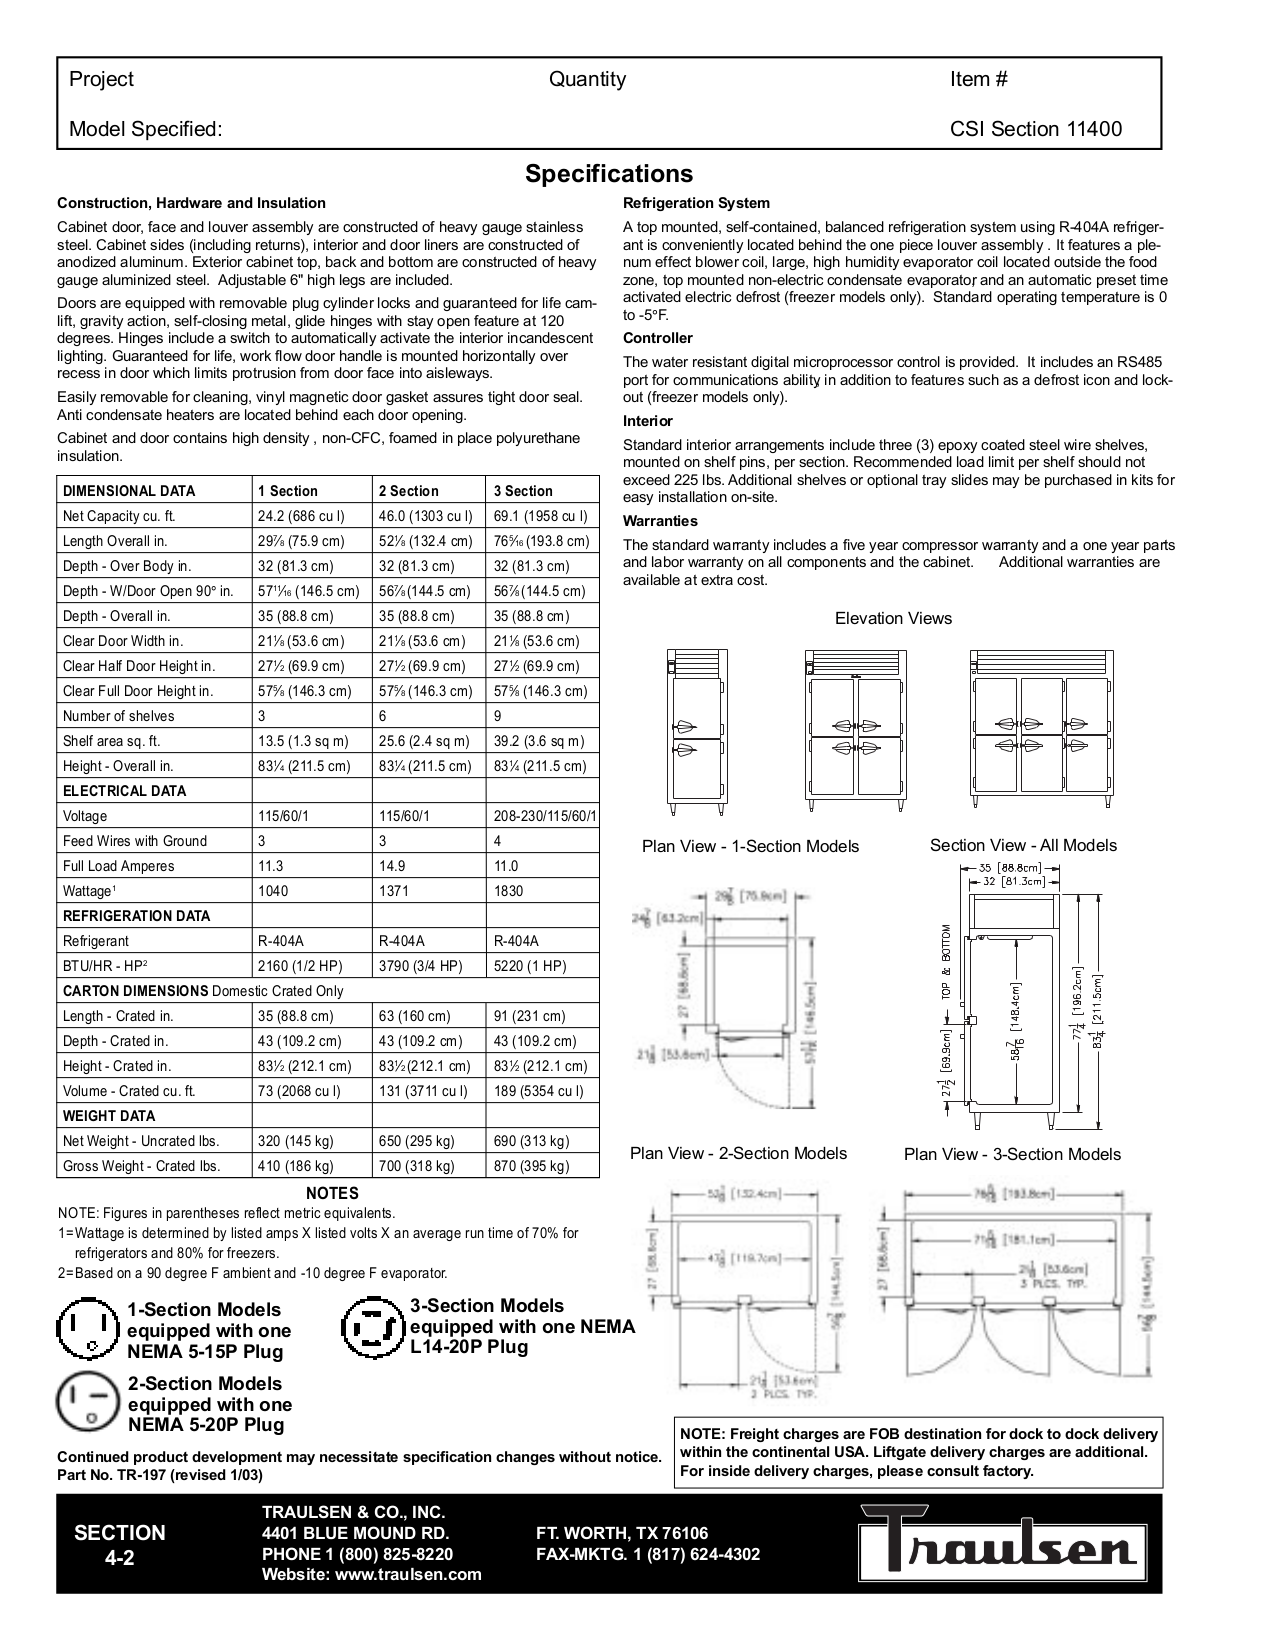 Traulsen refrigerator wiring diagram free download wiring diagrams traulsen g12011 wiring diagram wiring diagram virtual fretboard hotpoint refrigerator wiring diagram bohn refrigeration wiring diagrams asfbconference2016 Choice Image